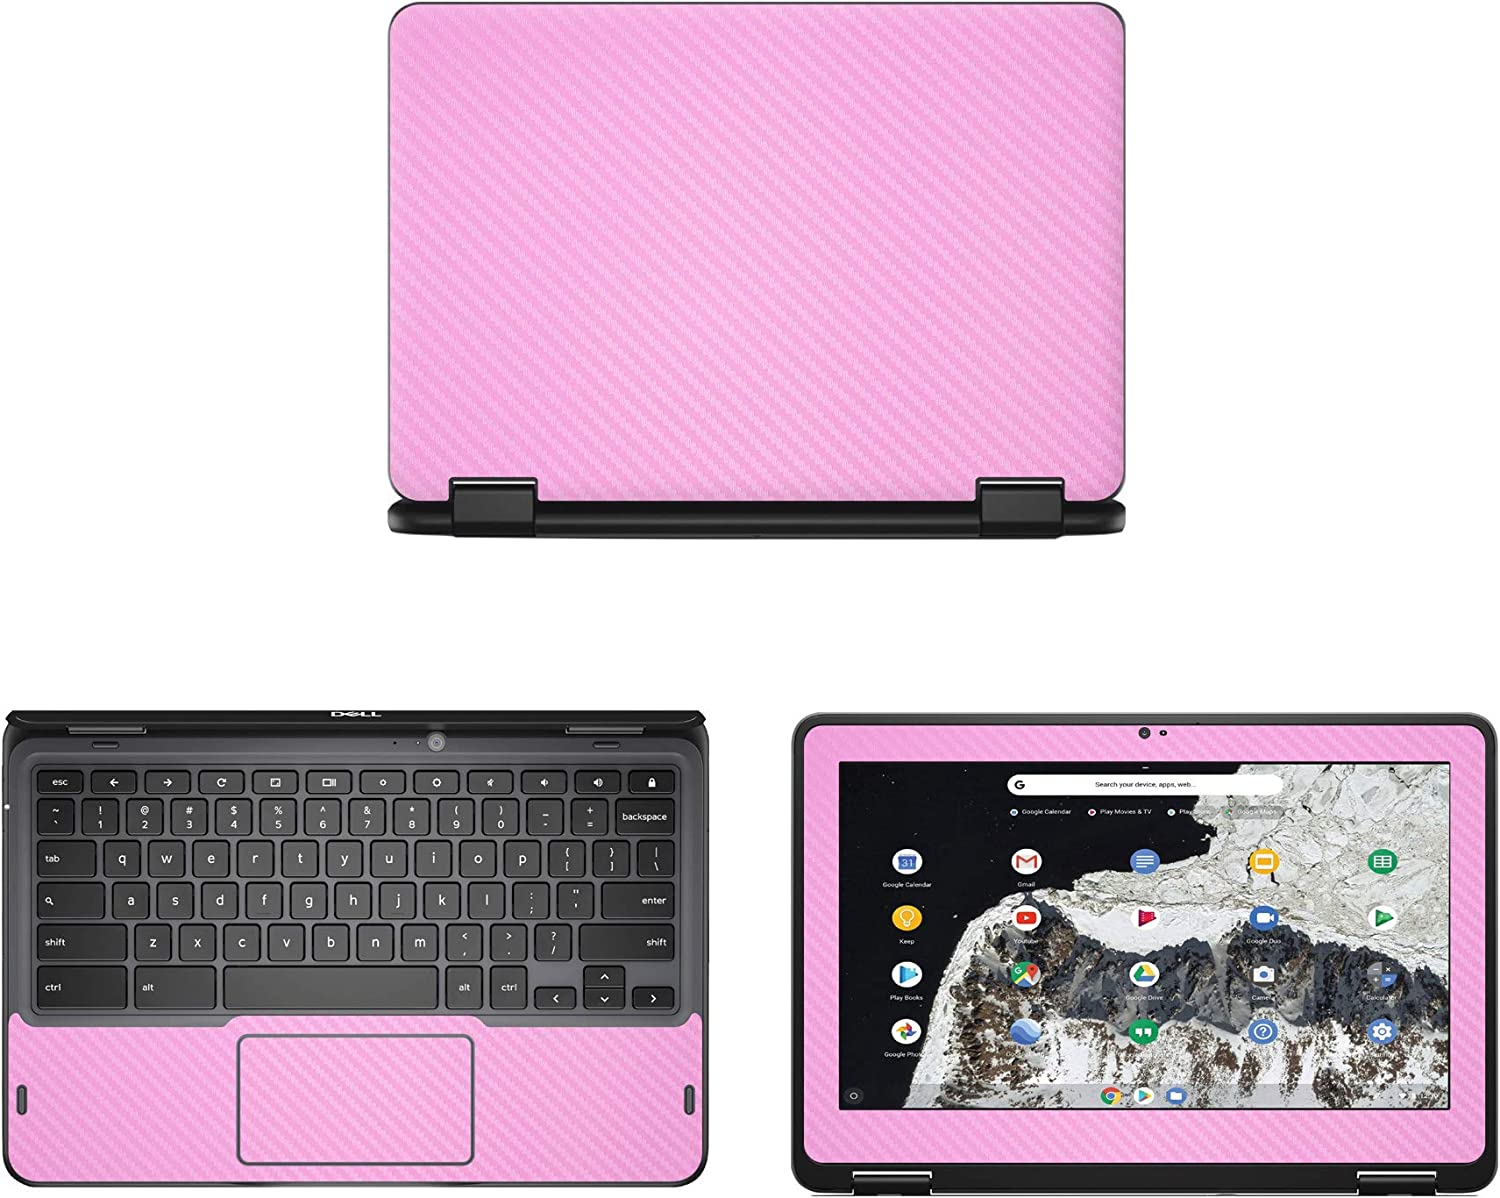 Decalrus - Protective Decal for Dell Chromebook 3100 2-in-1 (11.6